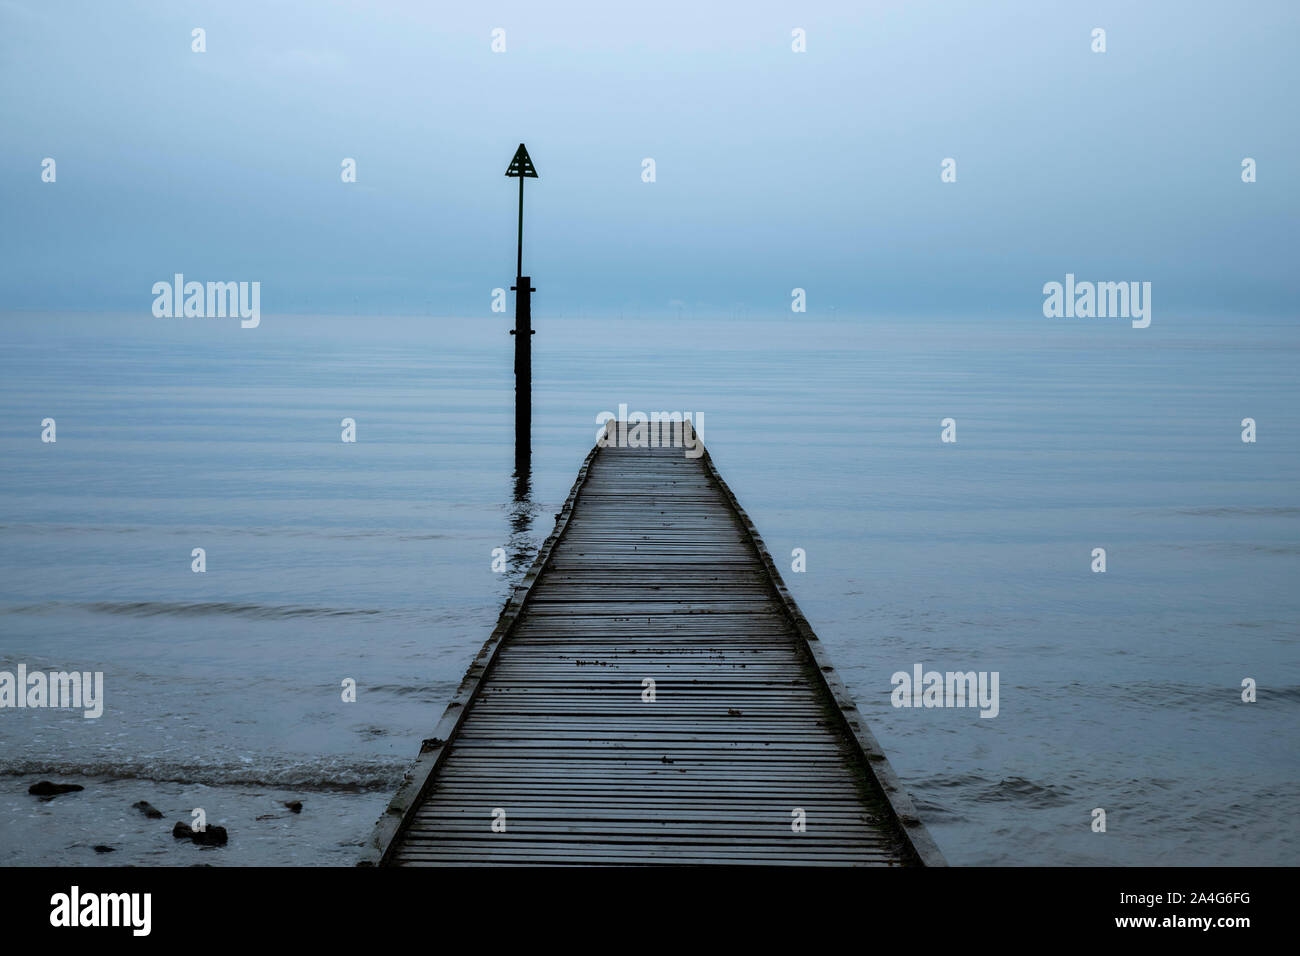 old-wooden-single-pier-leading-into-a-foggy-ocean-with-little-variation-from-sky-to-water-2A4G6FG.jpg